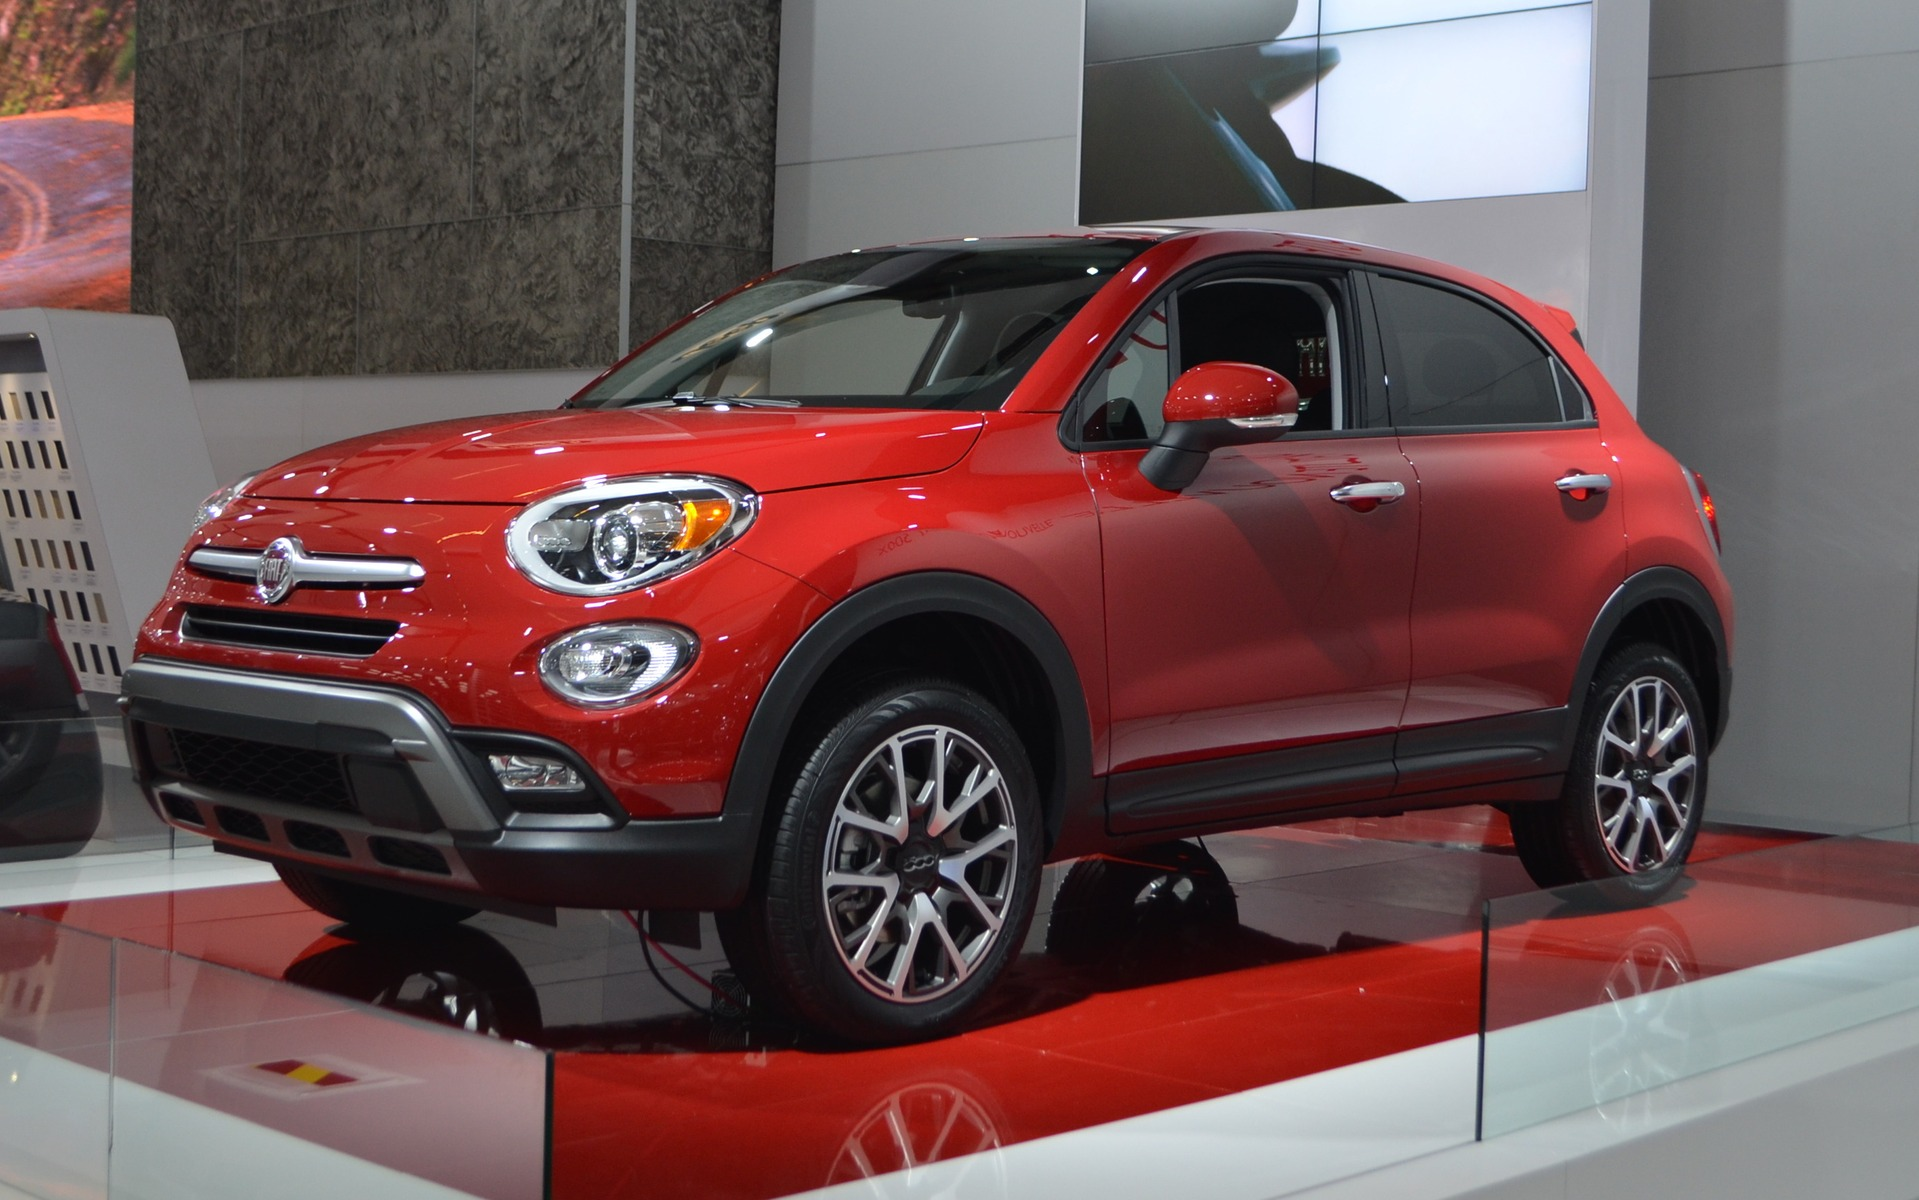 2016 Fiat 500X - News, reviews, picture galleries and videos - The